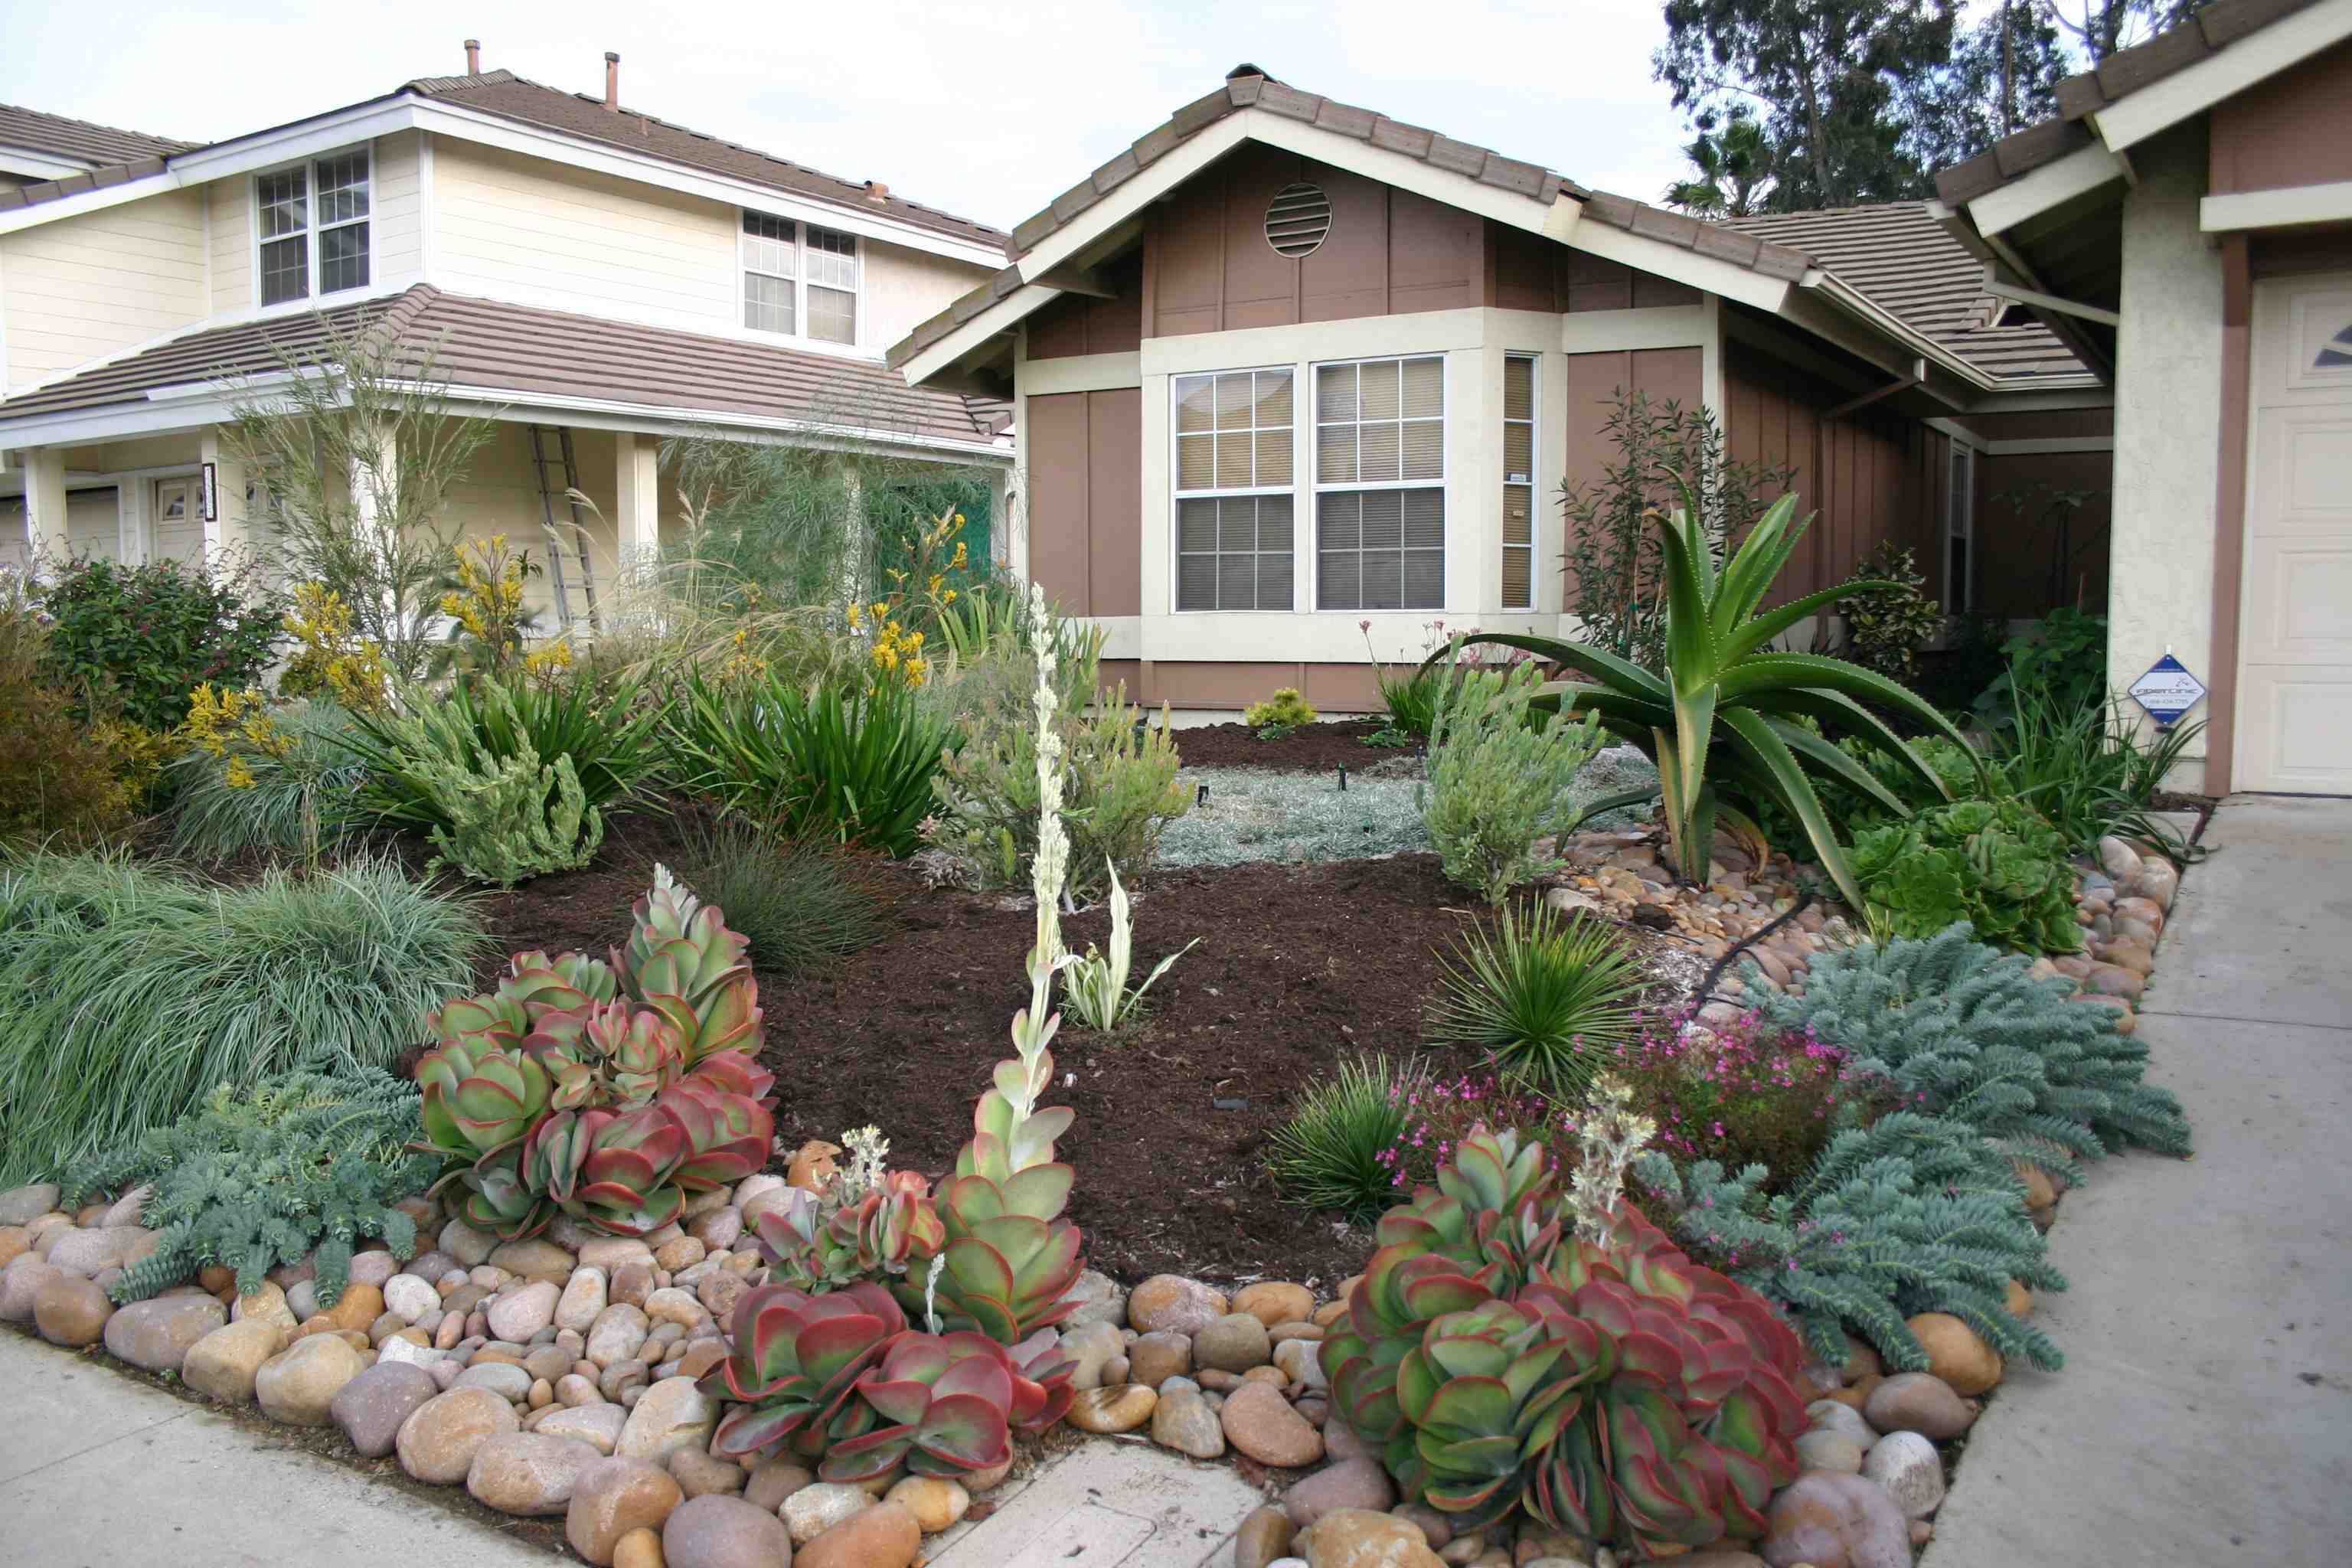 California drought resistant landscaping ideas drought for Ideas for front yard plants